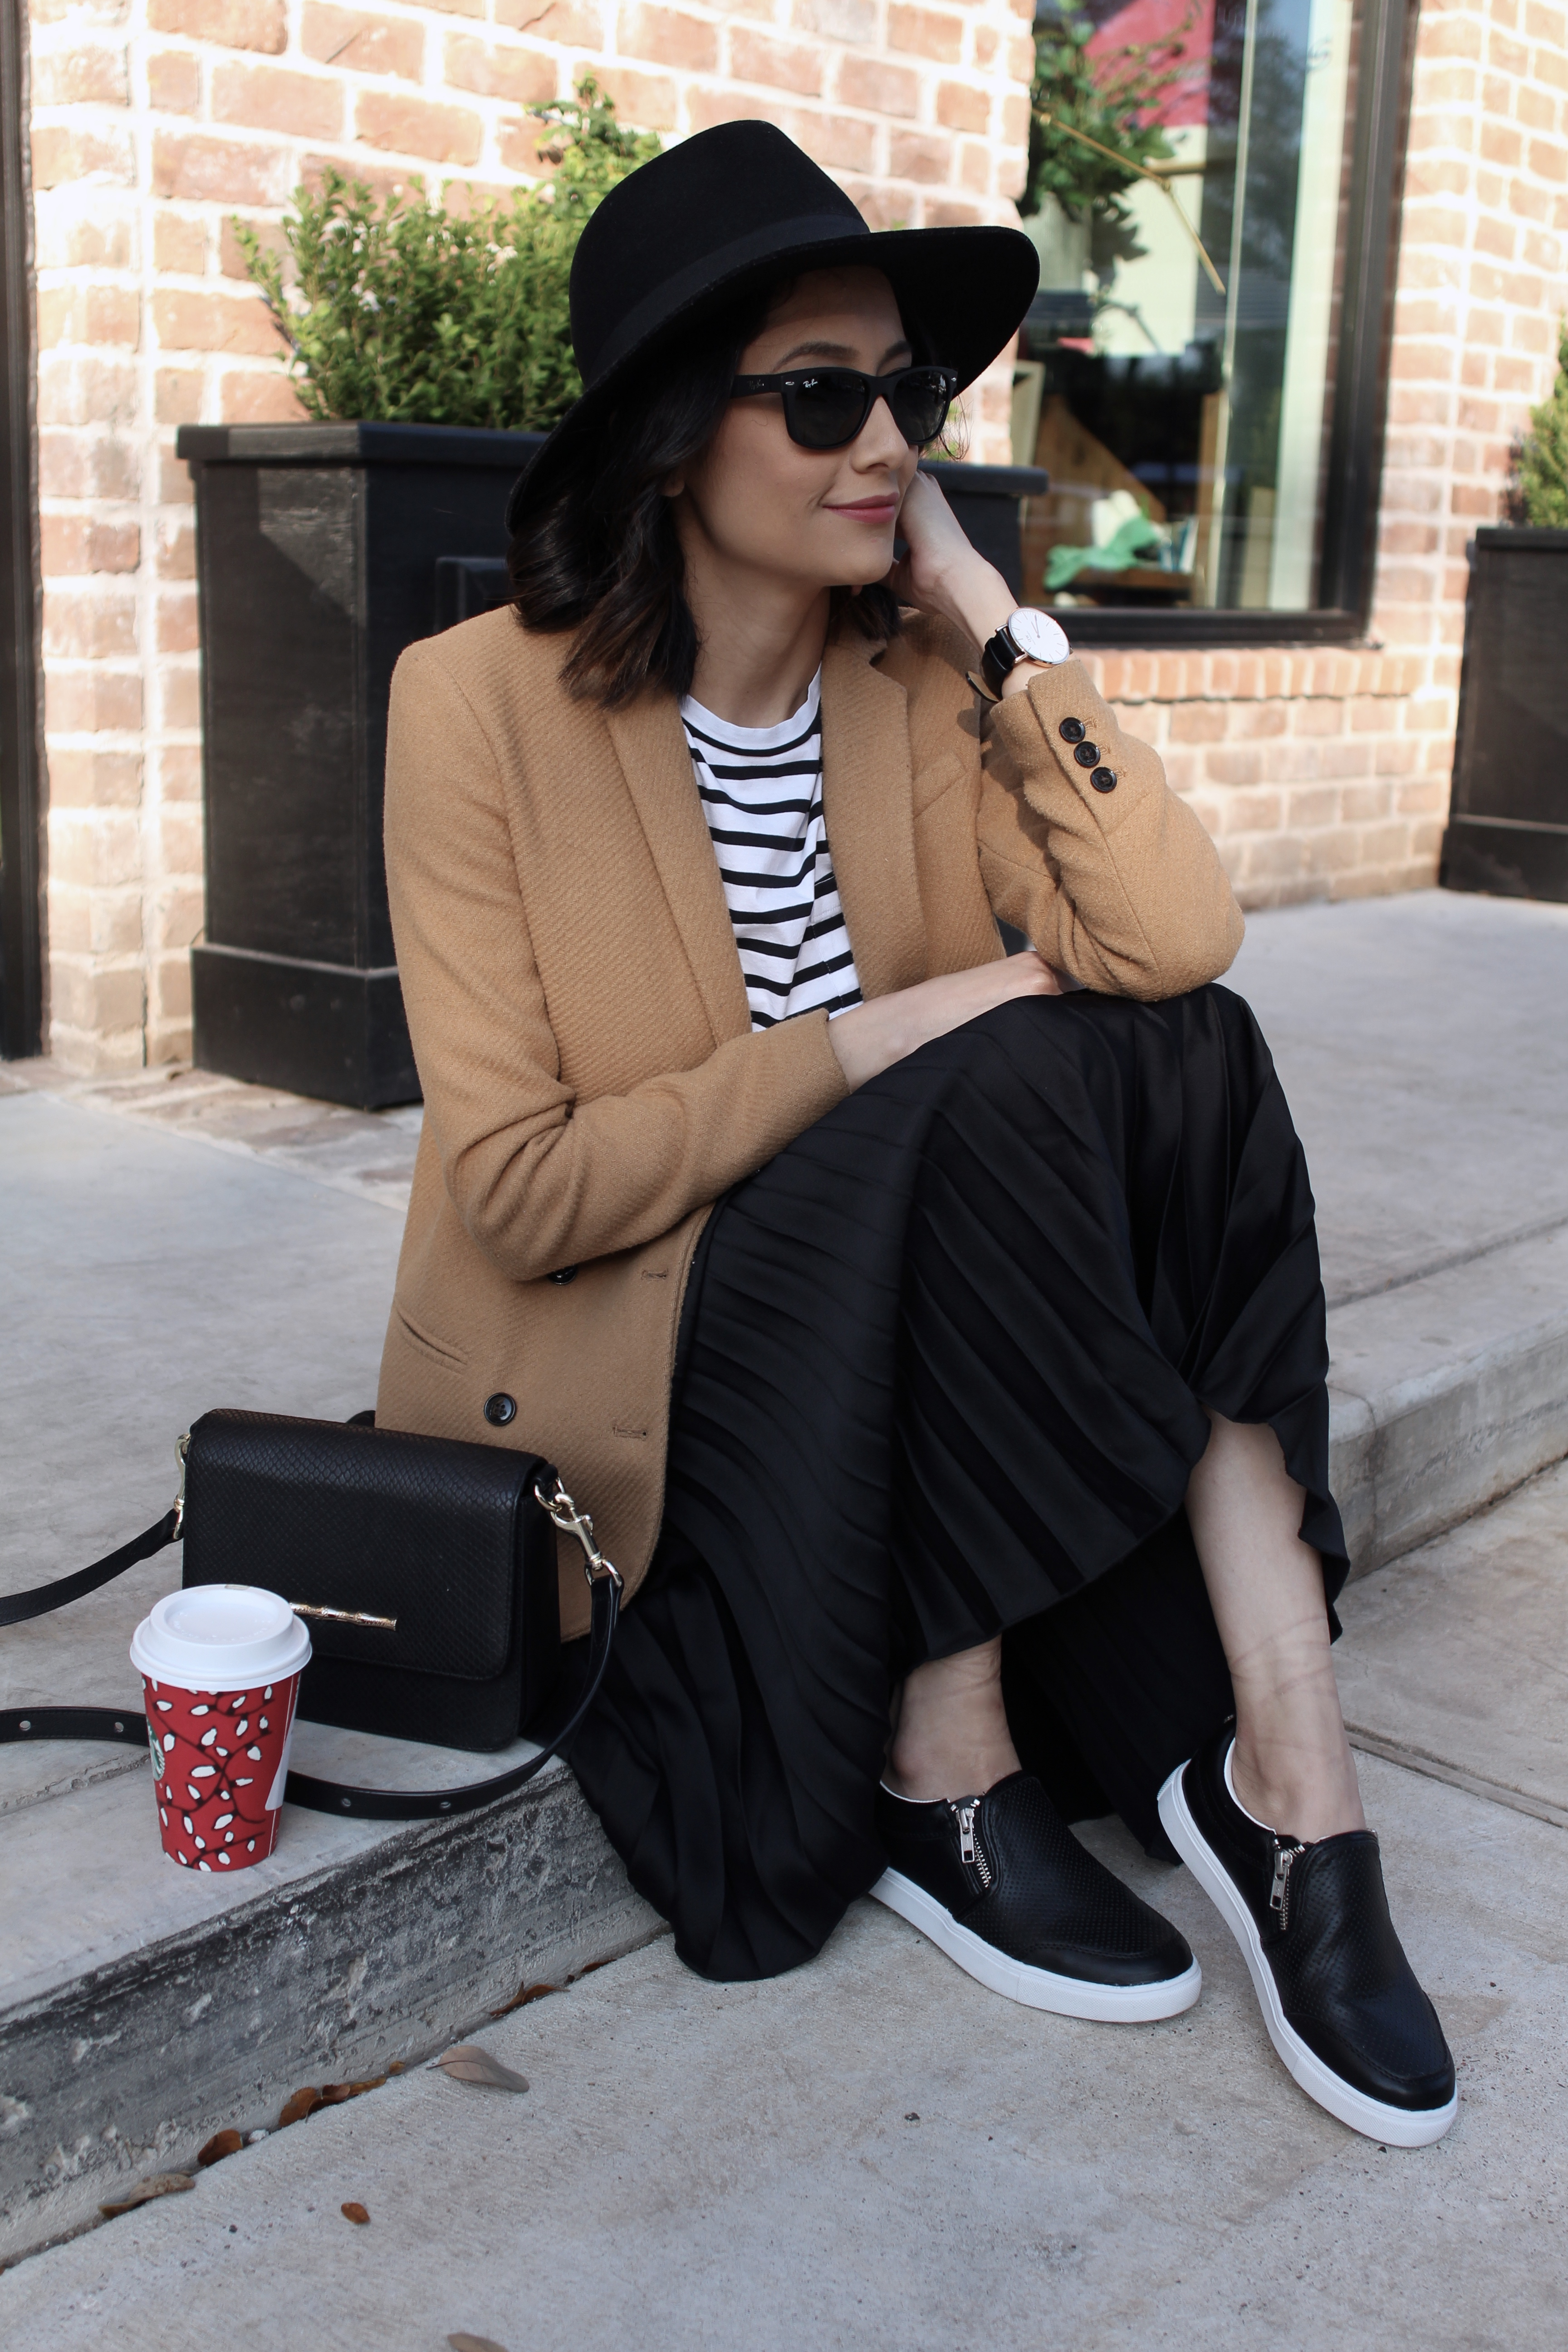 5 ways to master the off-duty look